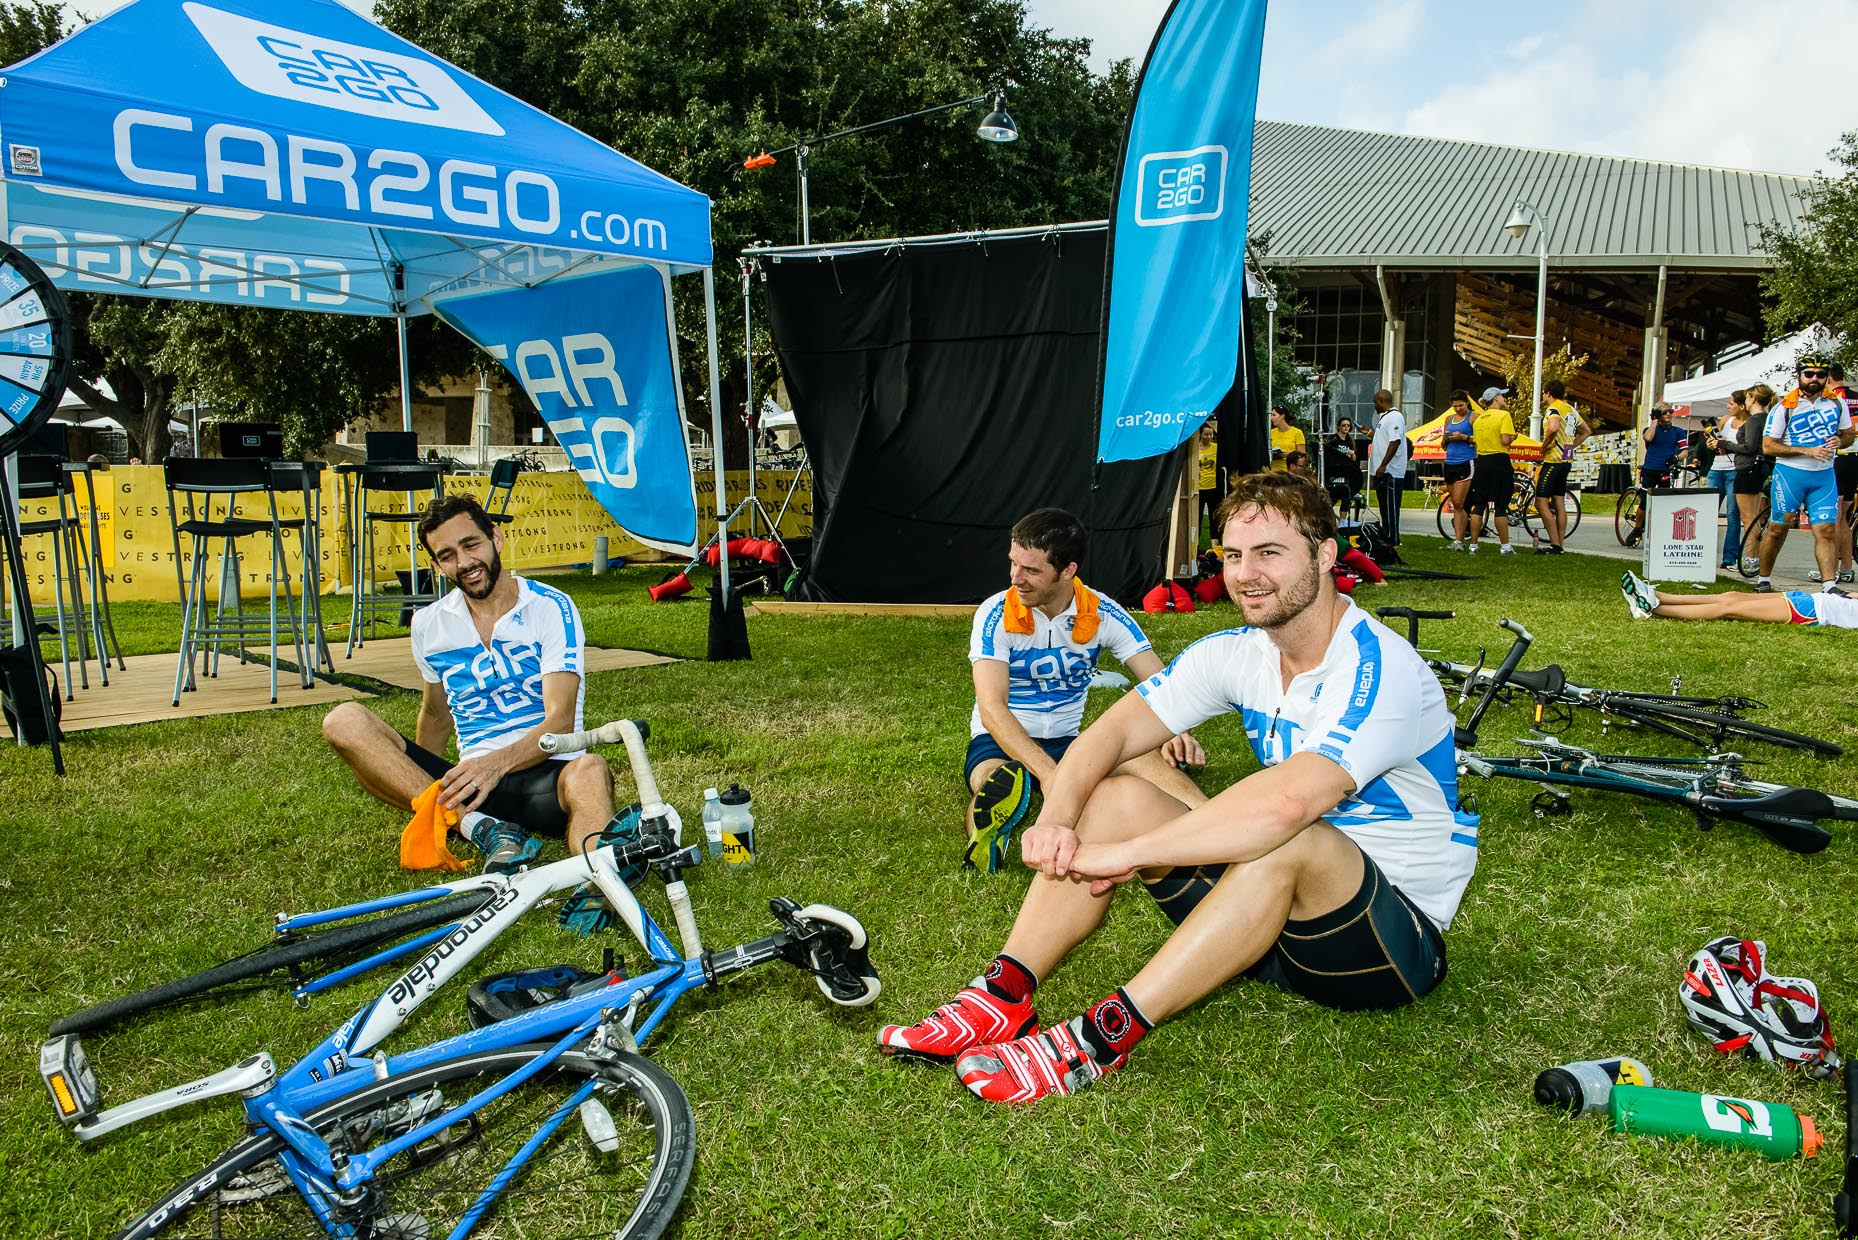 Livestrong-Challenge-bicyclists-Austin-Commercial-Photographer-car2go.jpg